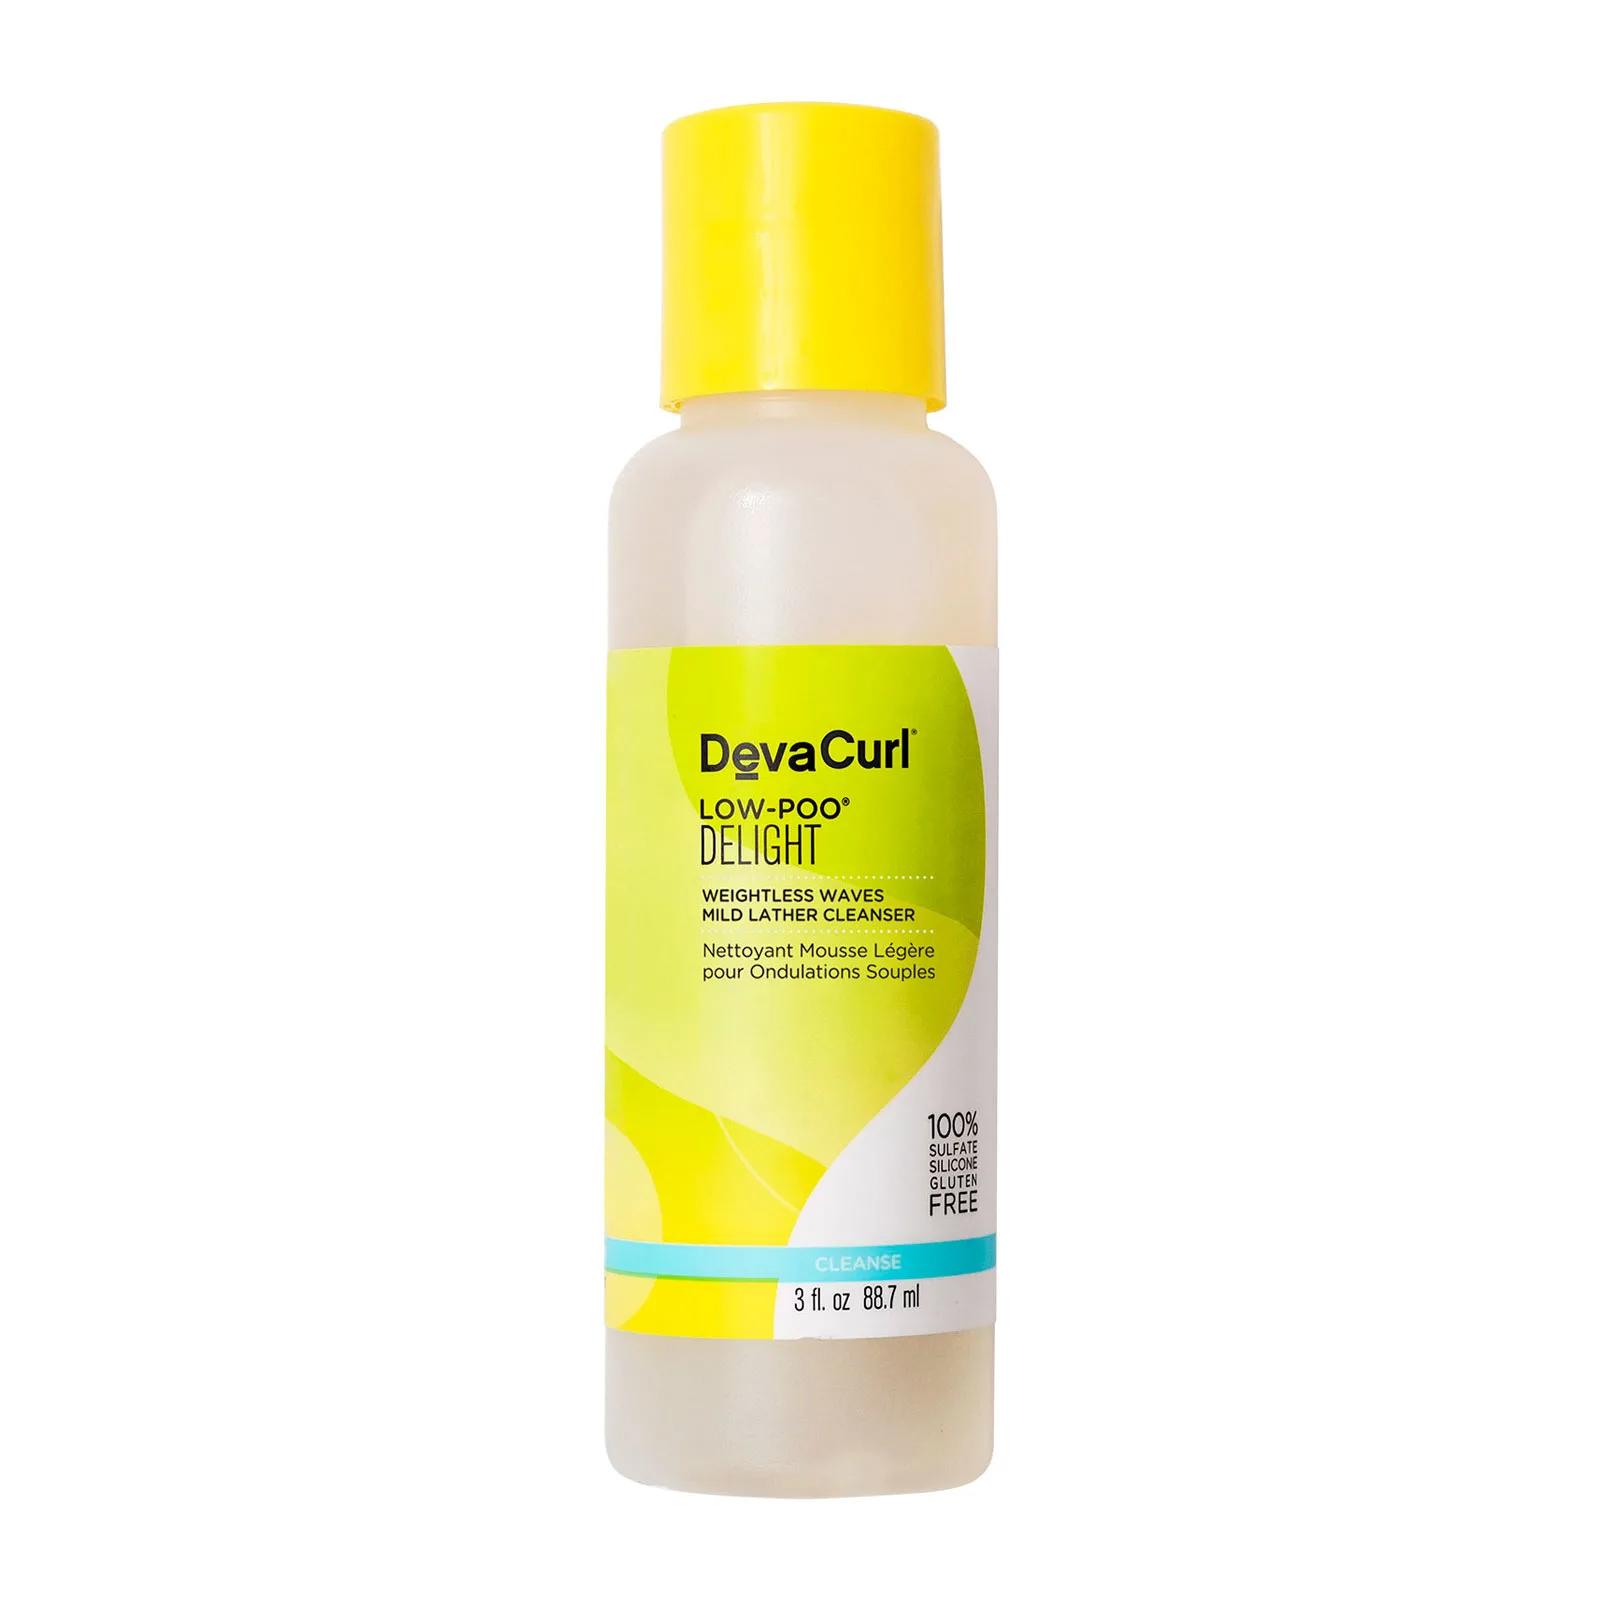 DevaCurl Travel Size Low-Poo Delight Weightless Waves Mild Lather Cleanser, 90ml